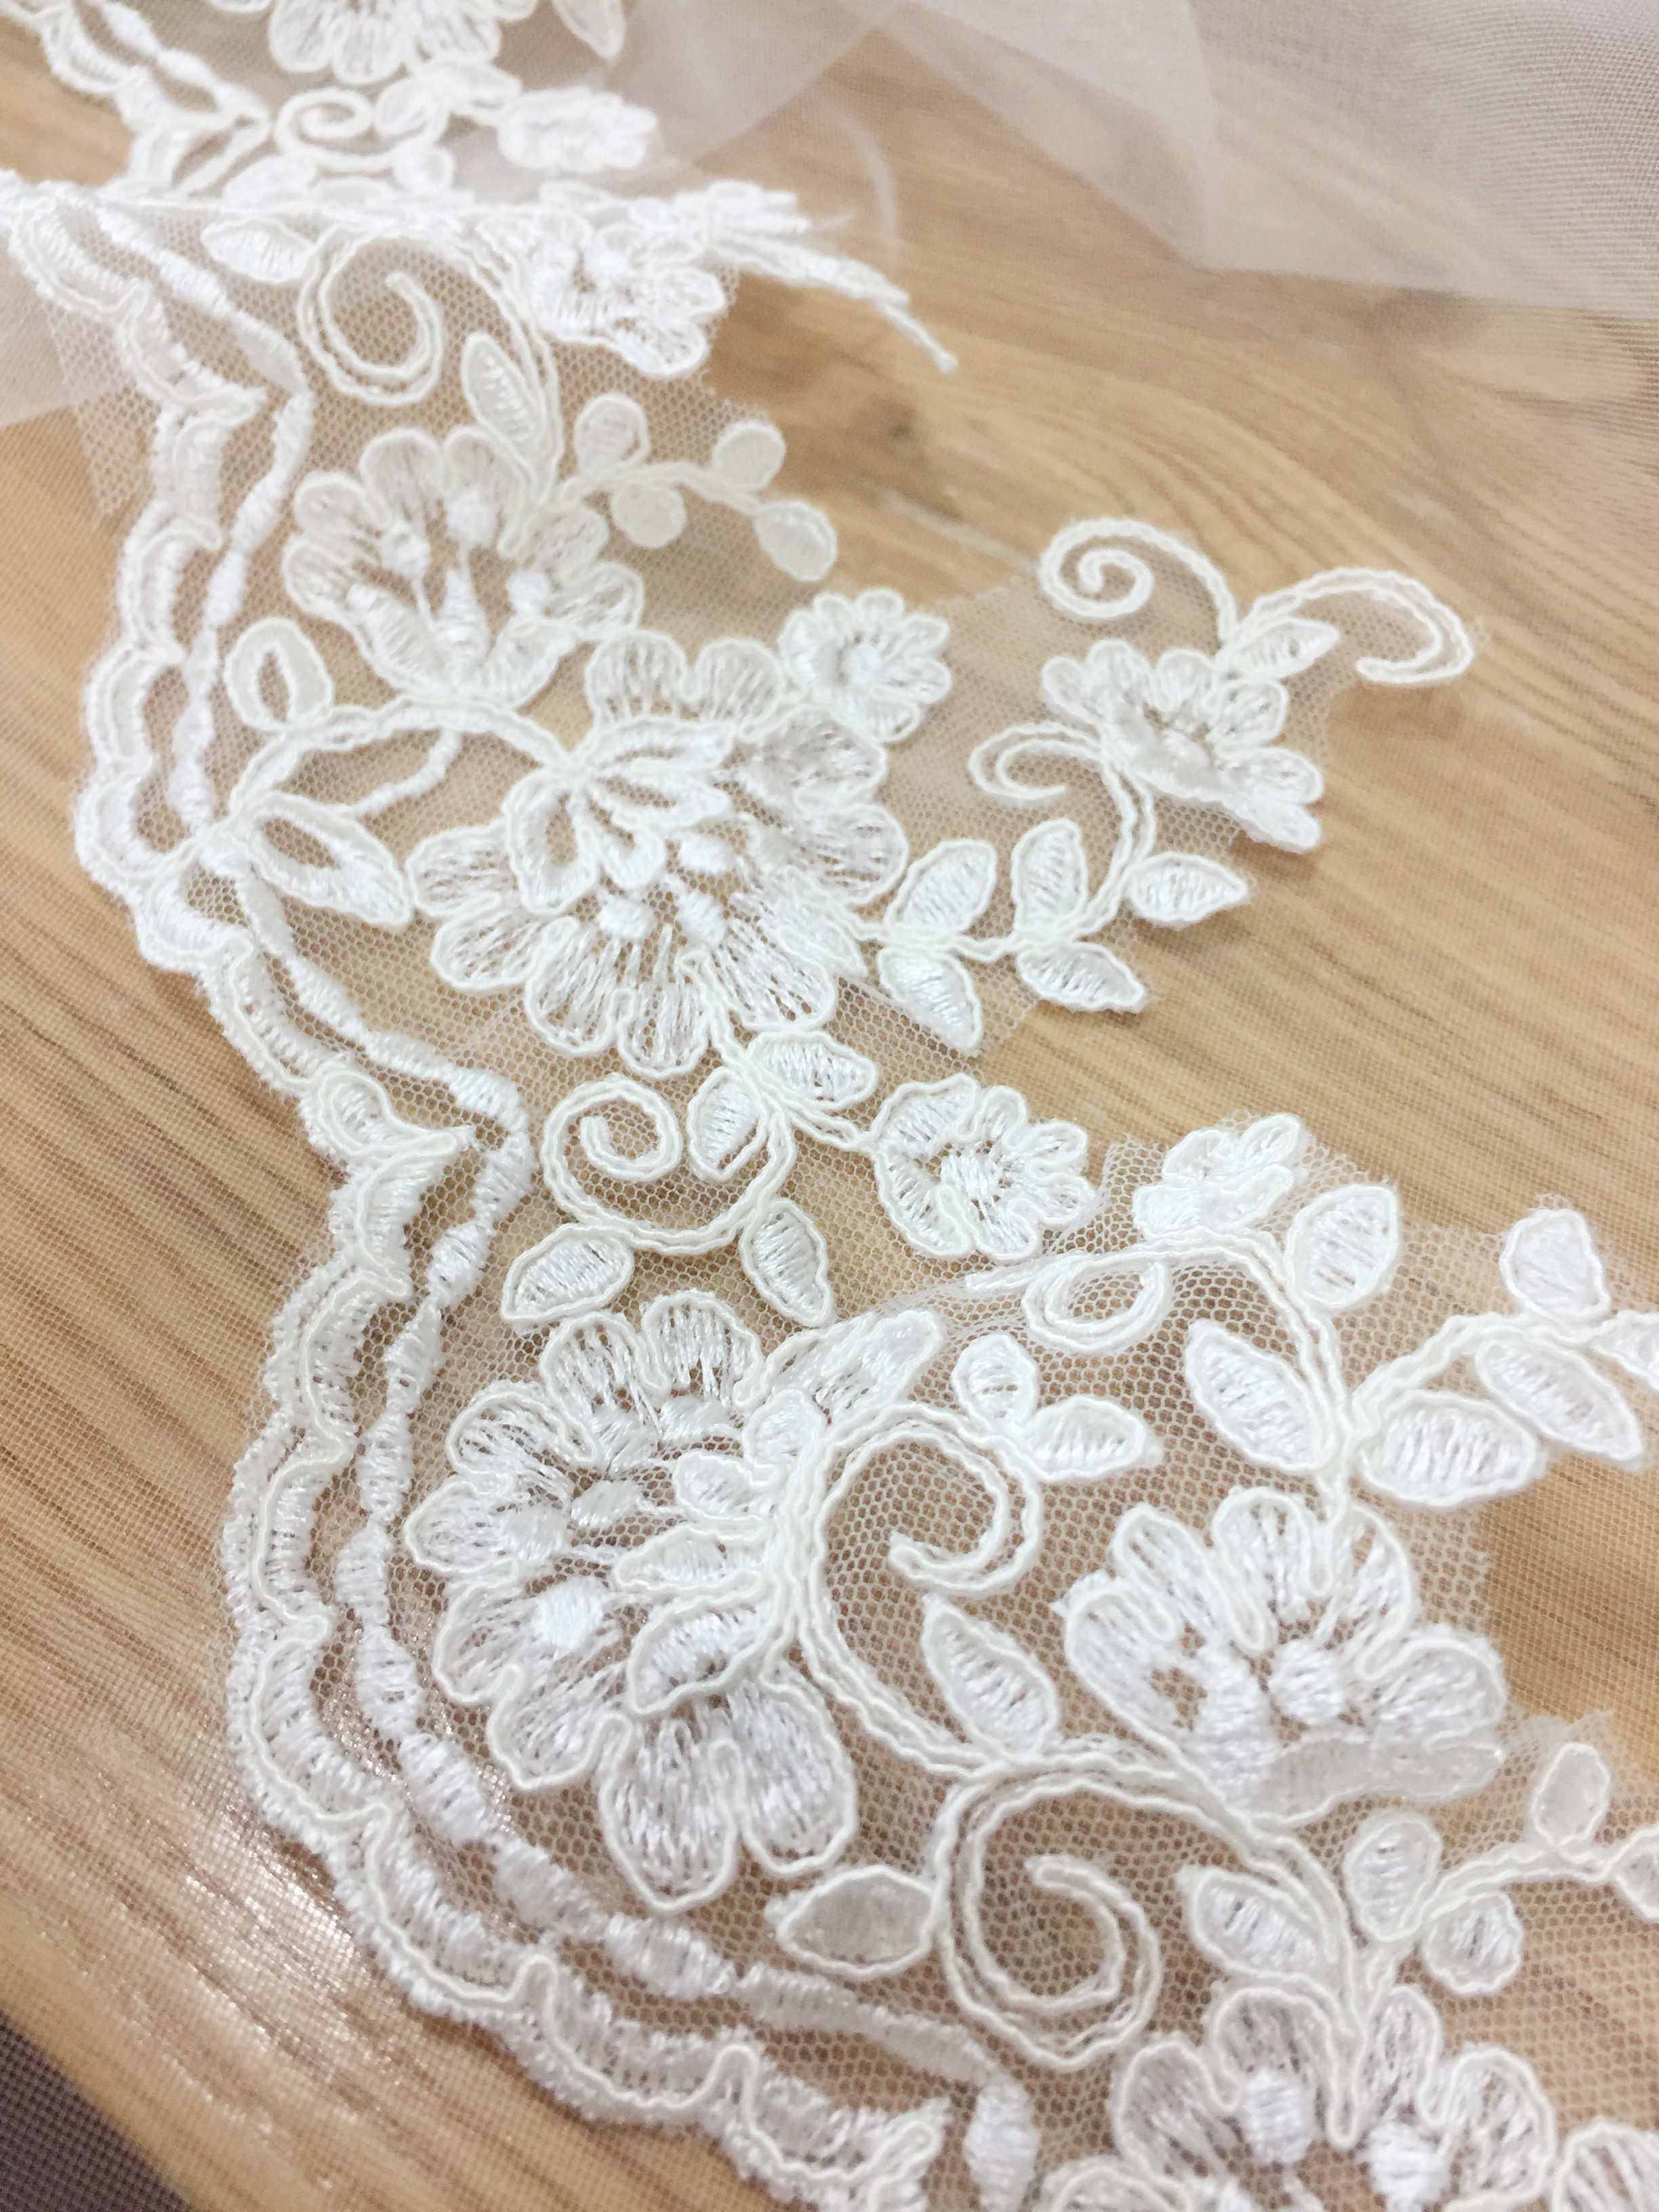 Ivory 3 Yards Retro Fabric Hollowed Embroidery Cotton Lace Dress Lace Handicrafts Sewing Lace 5.1 Inches Wide